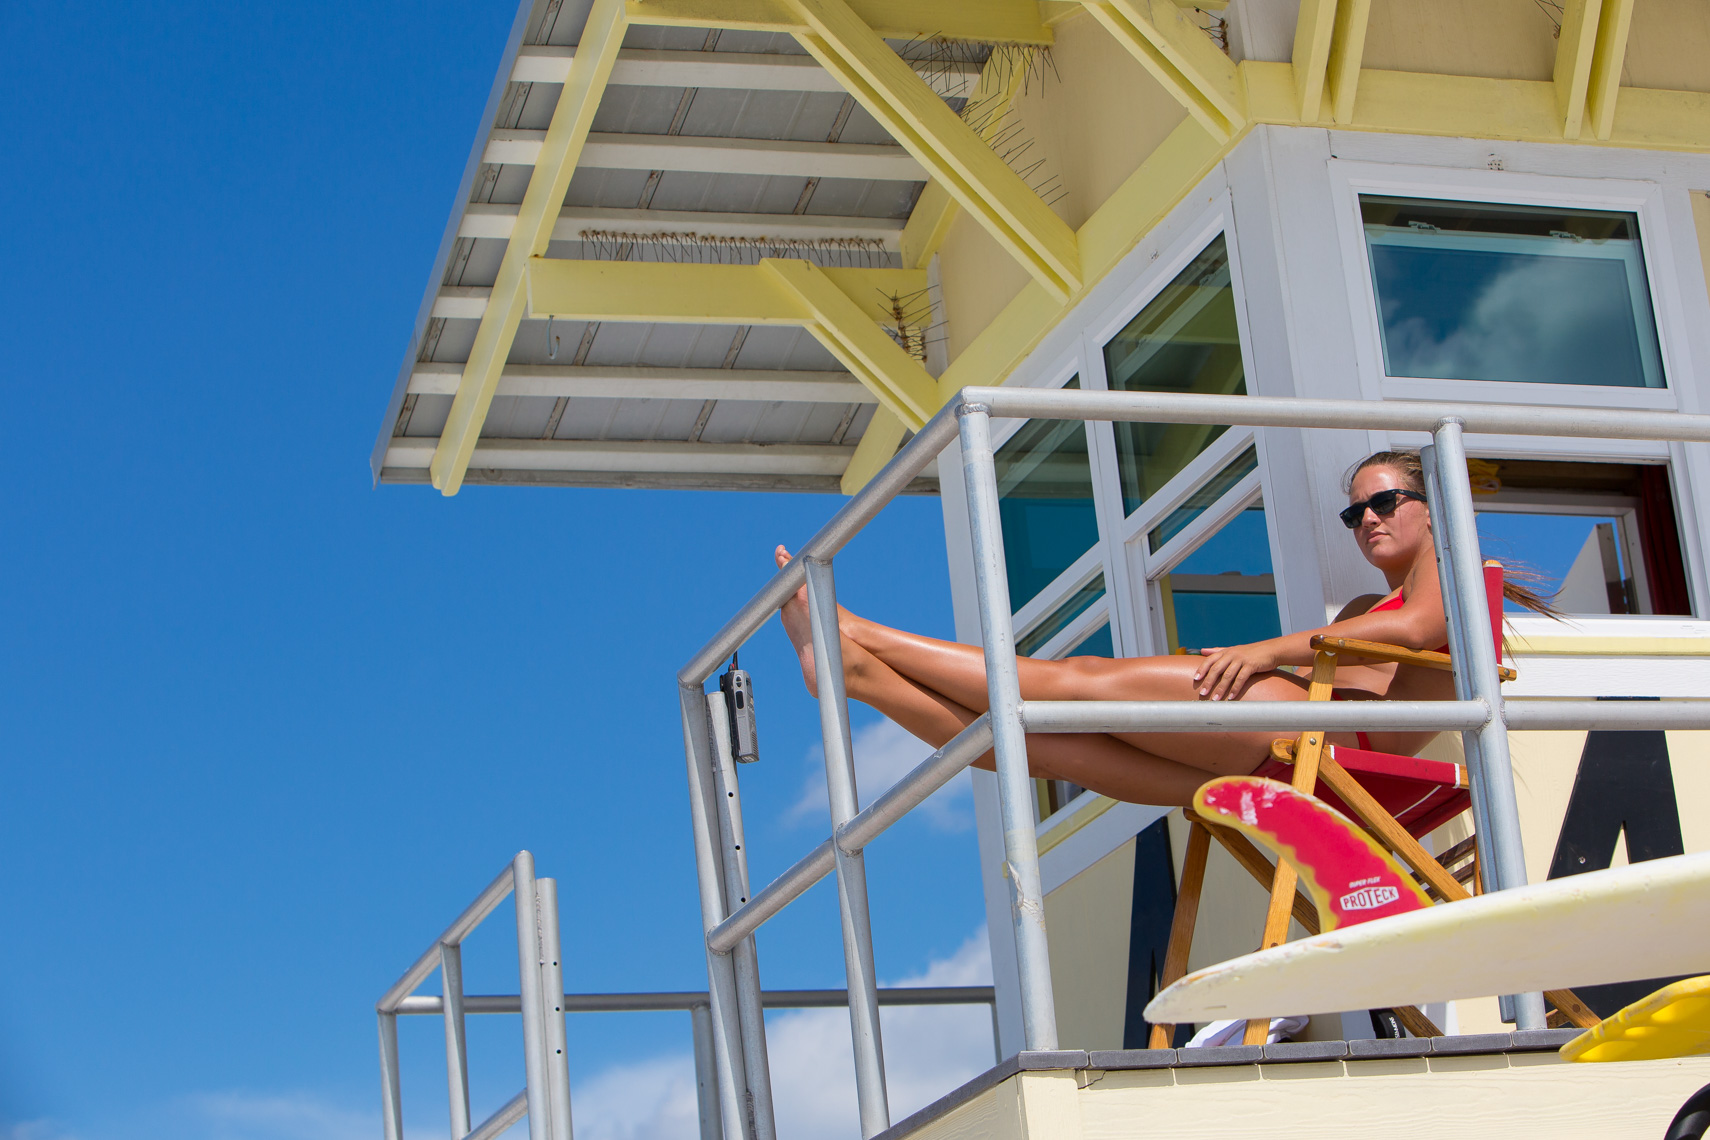 Lifeguard, shot by Steven P. Widoff, editorial, lifestyle and advertising commercial photographer in Tampa, Florida.